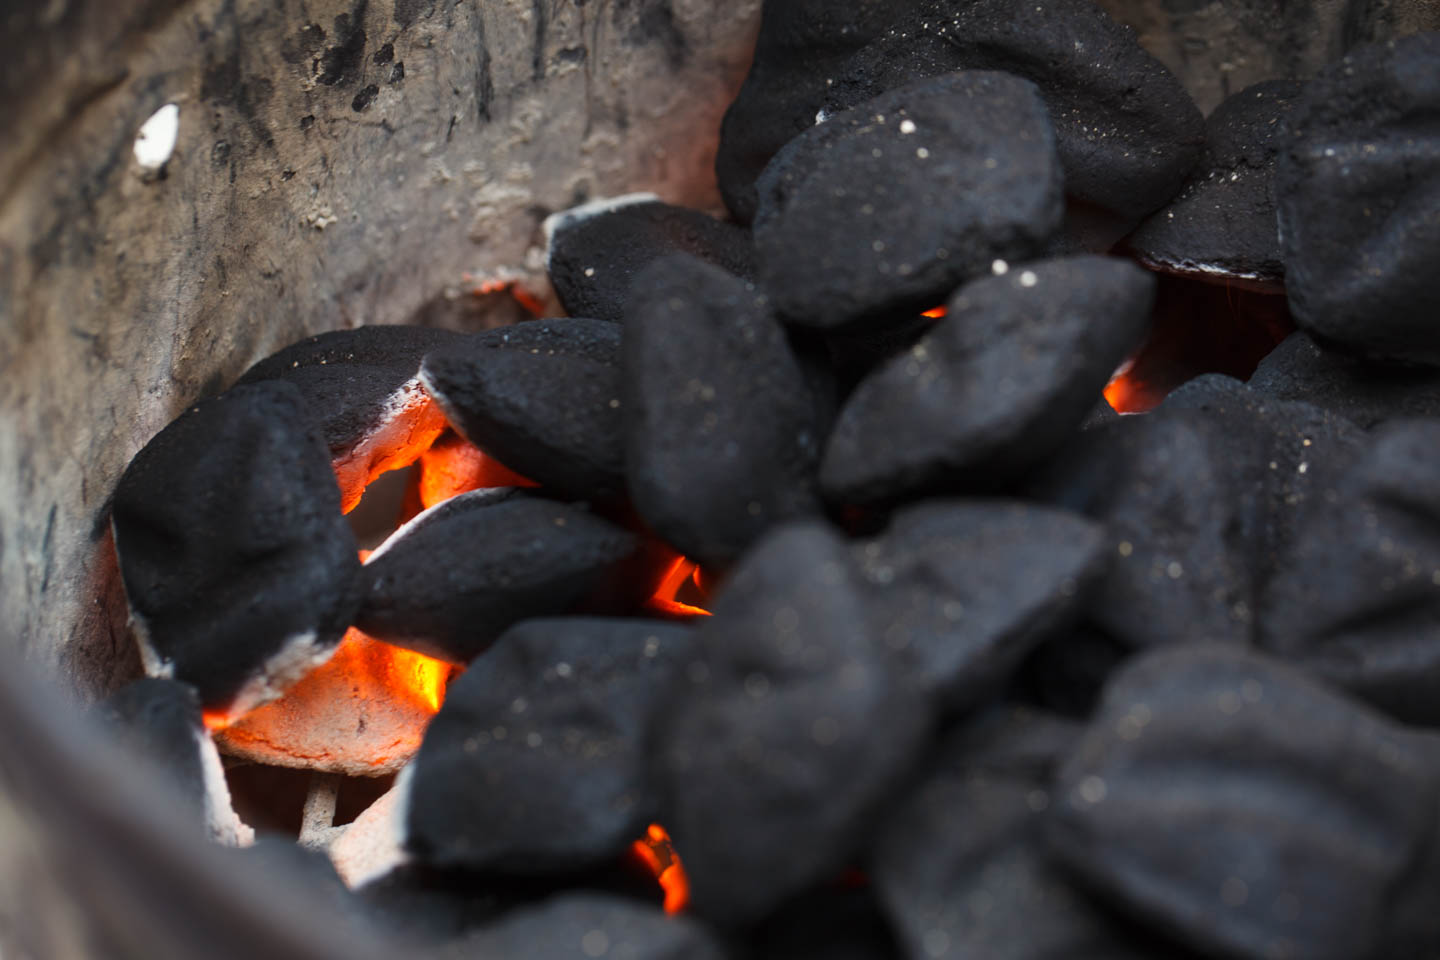 Hot coals for cooking